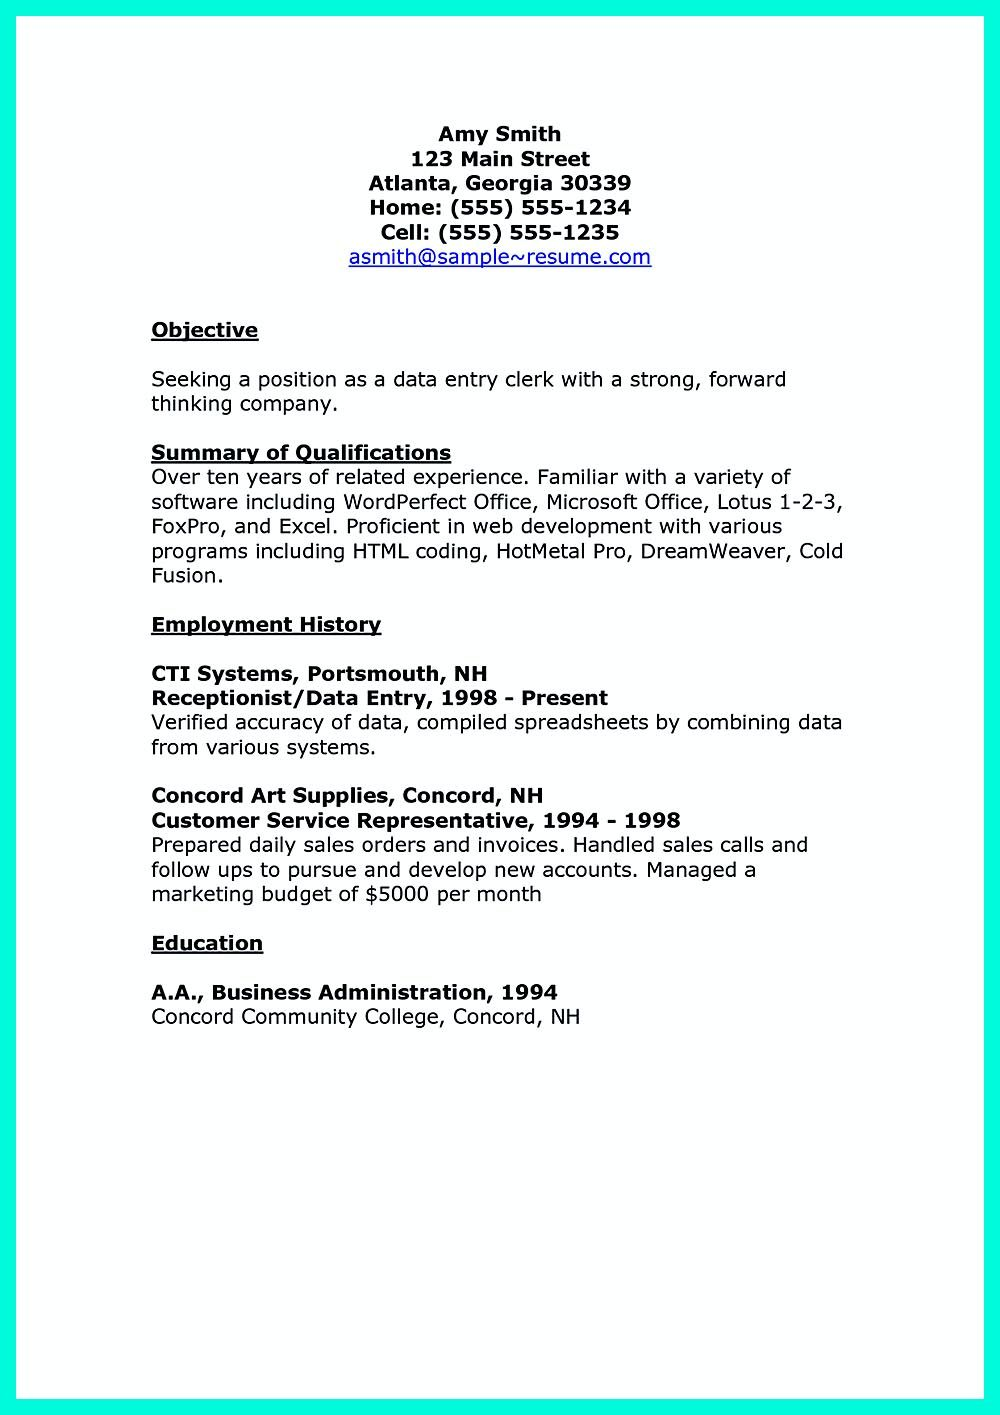 resume Sample Resume For Data Entry Clerk your data entry resume is the essential marketing key to get job you seek